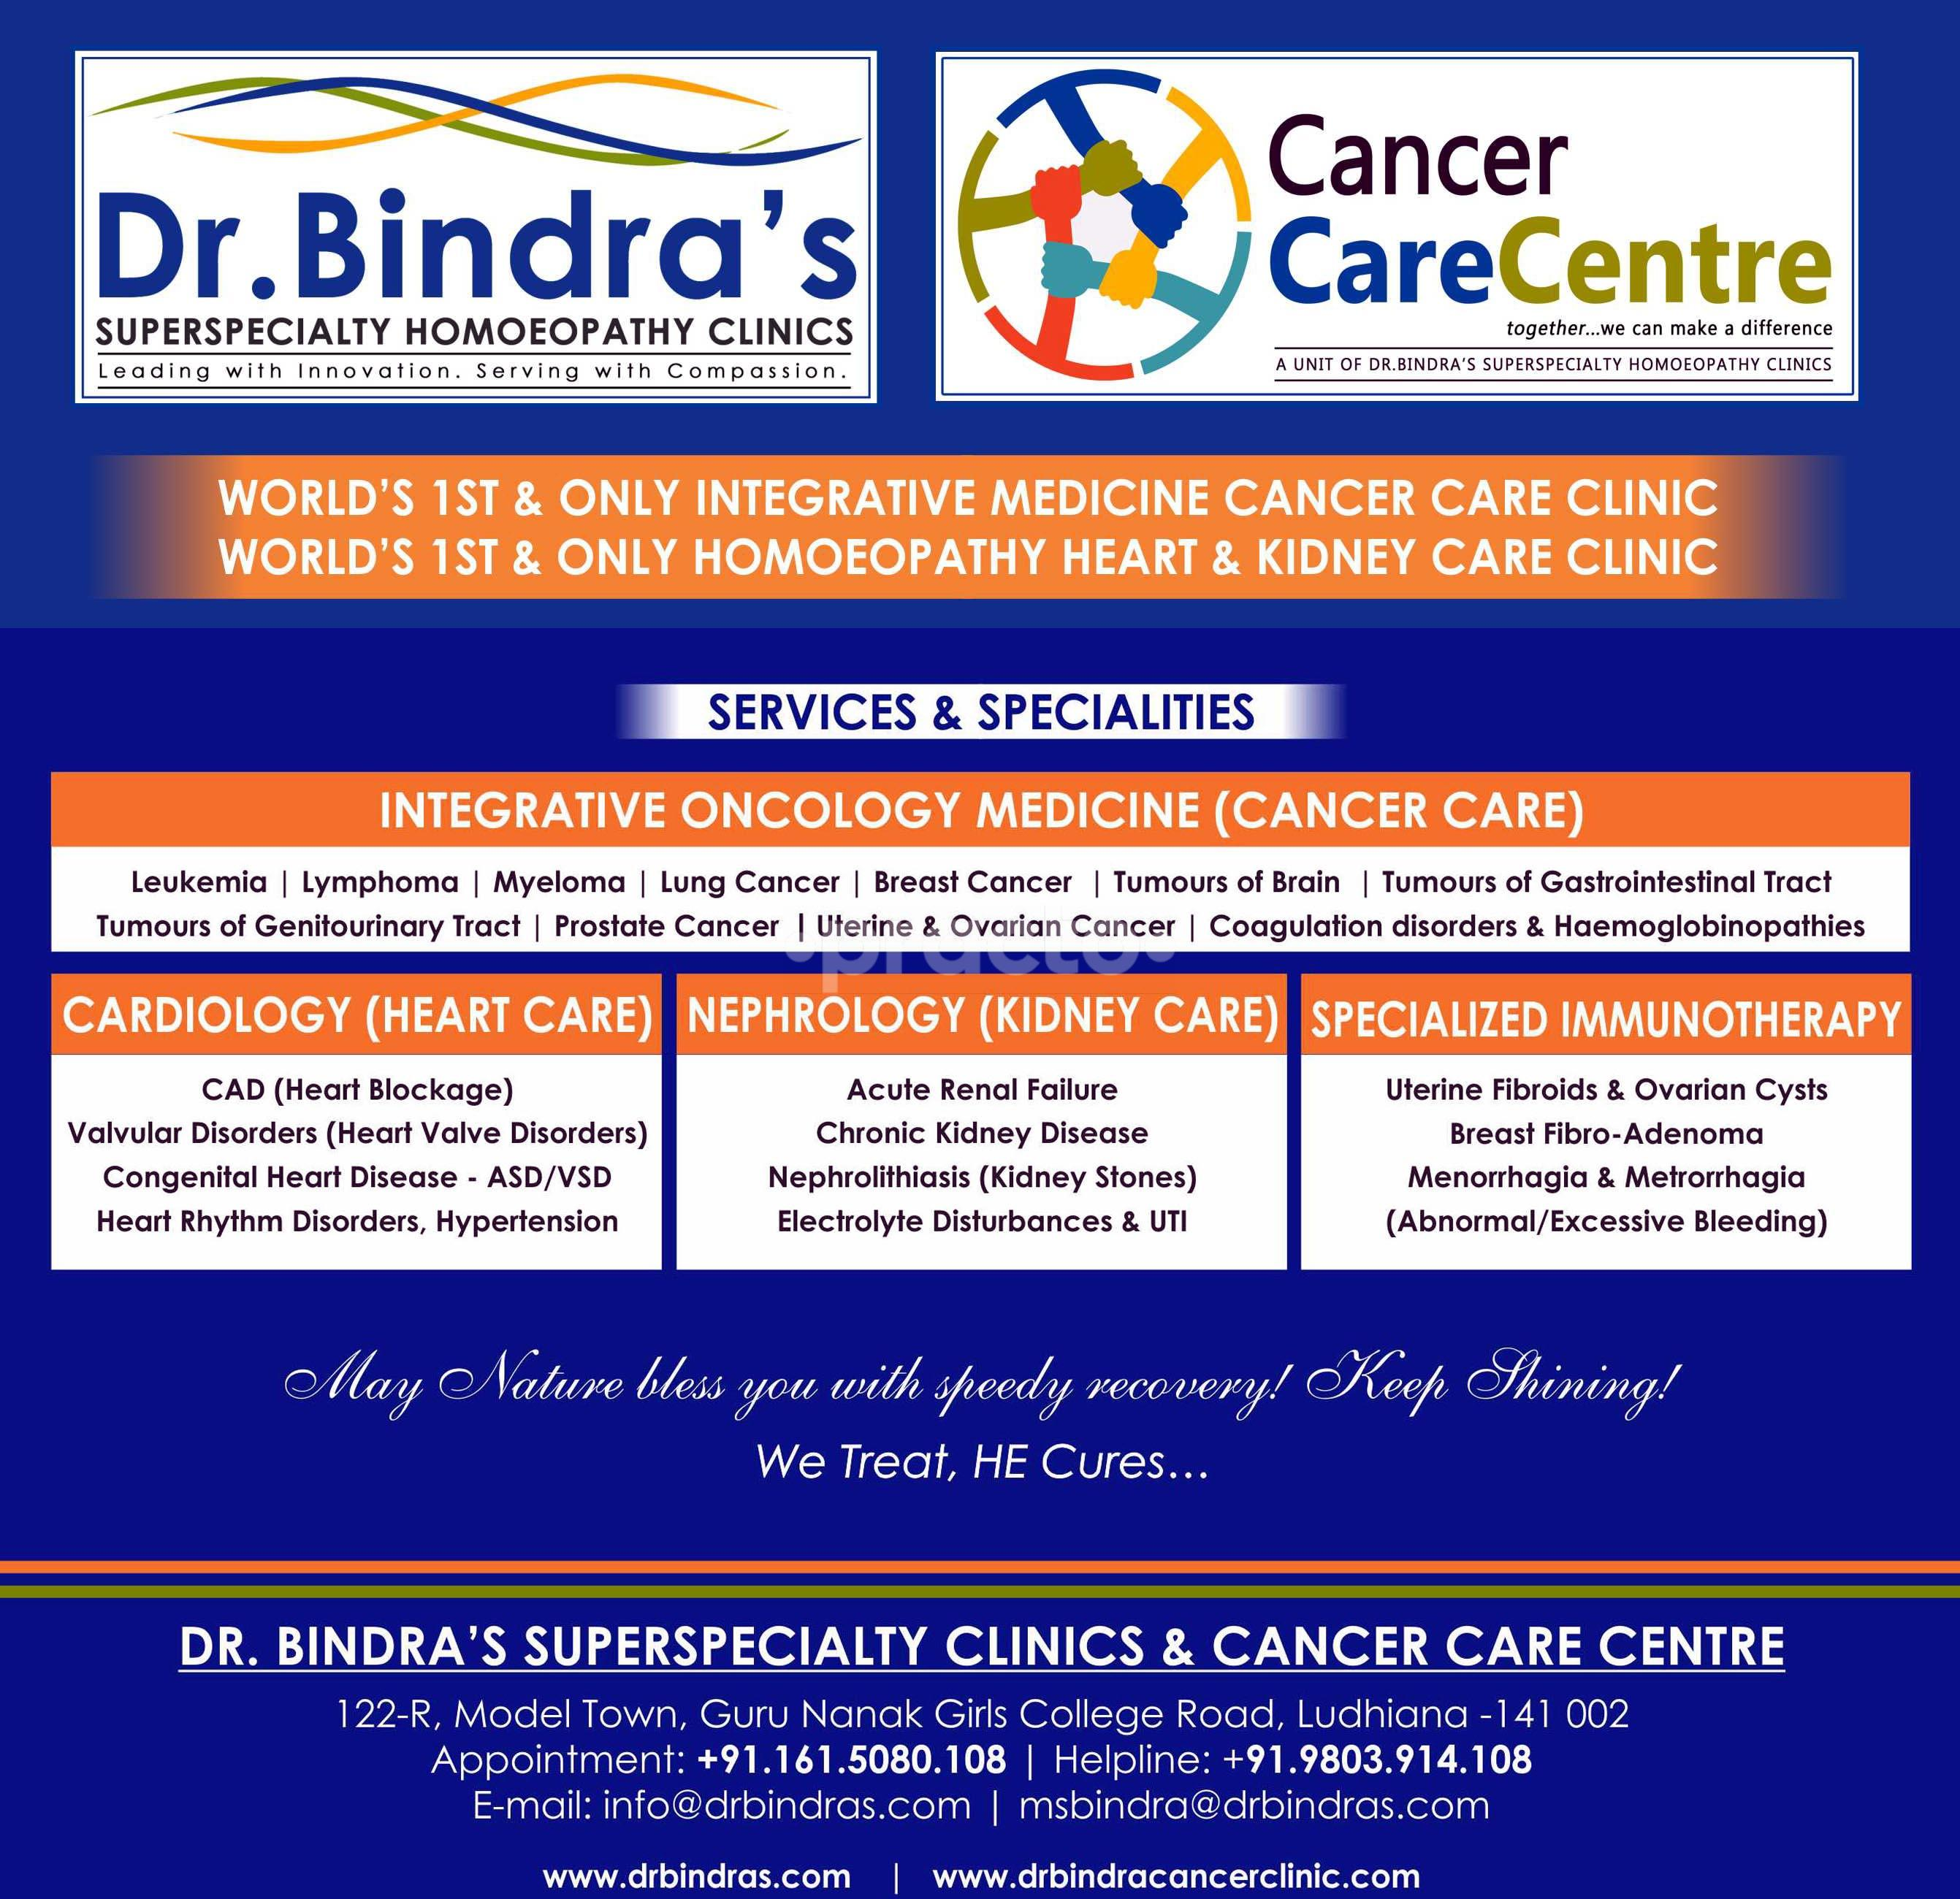 Dr Bindra's Superspecialty Homeopathy Clinic & Cancer Care